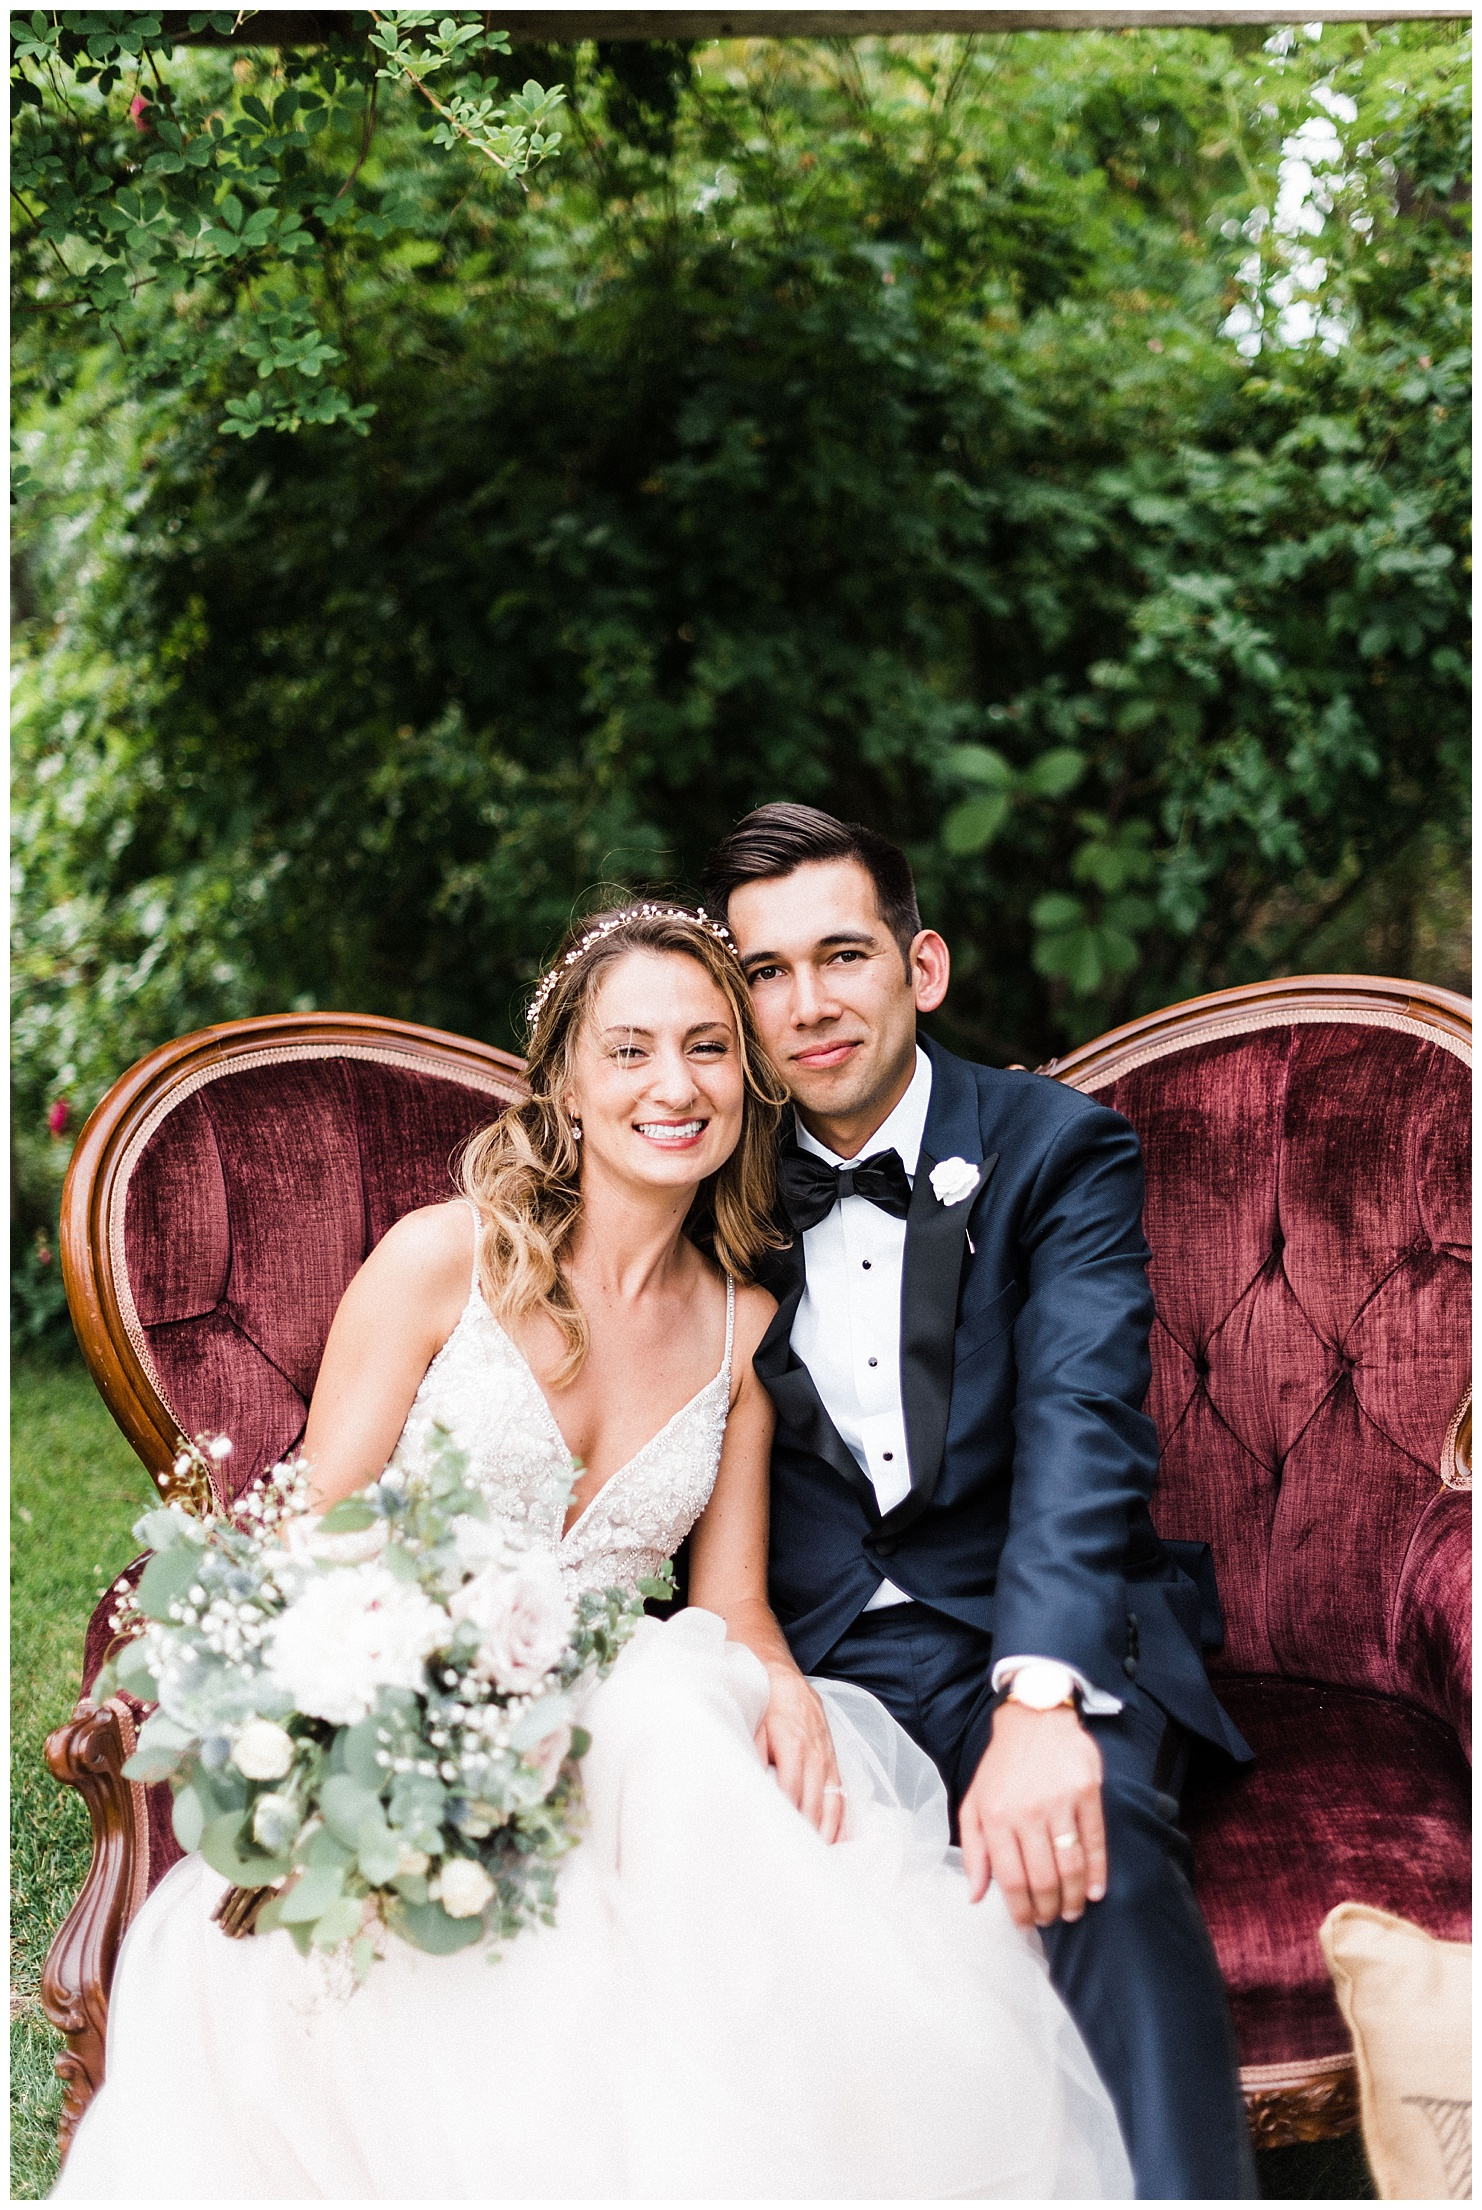 Portrait of Anna & Tony at their Spokane wedding reception at Beacon Hill by Forthright Photo